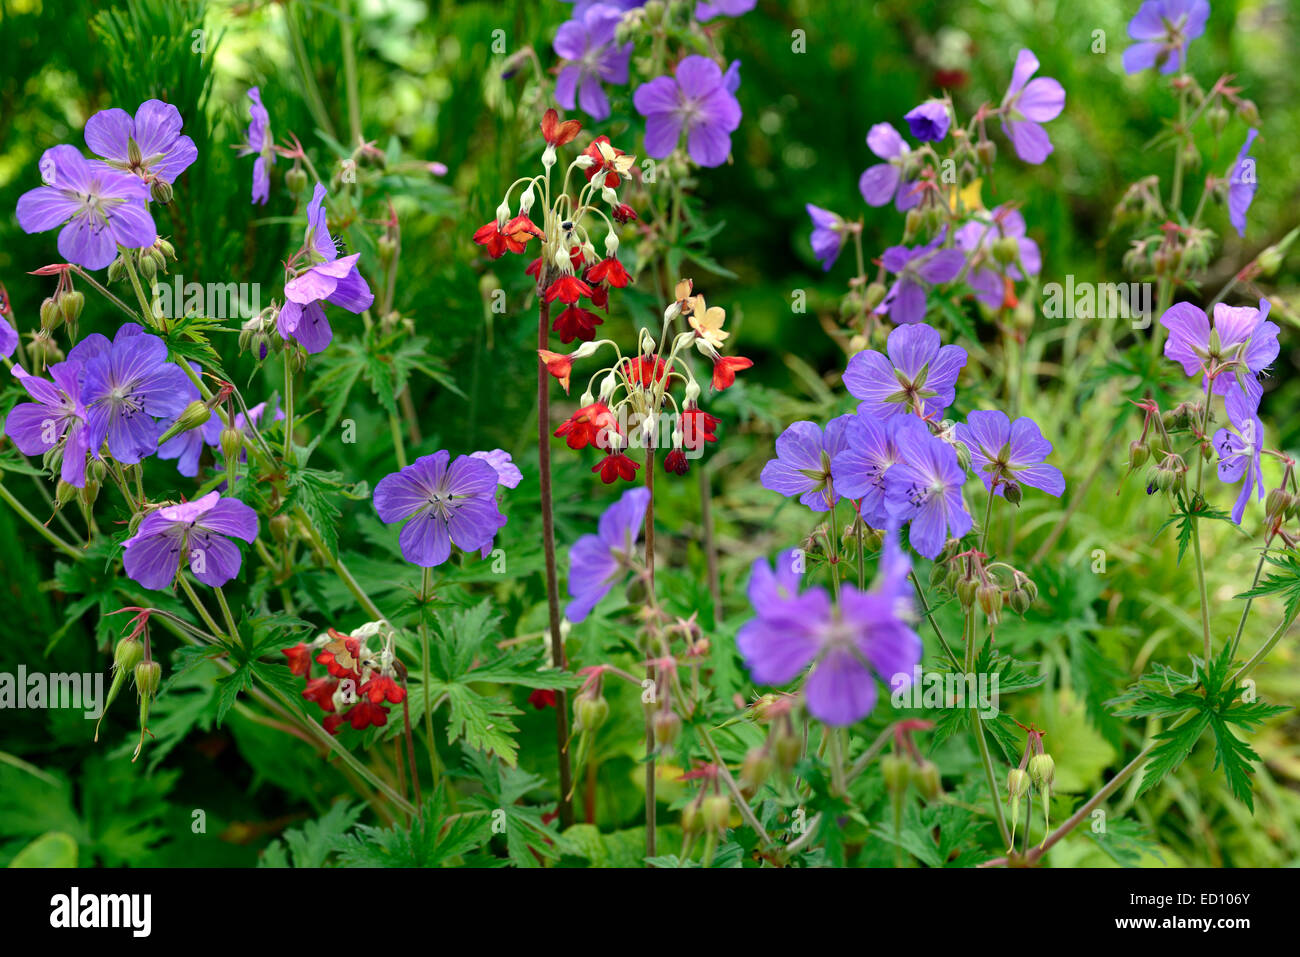 Primula florindae red geranium johnsons blue flowers flowering stock primula florindae red geranium johnsons blue flowers flowering perennial planting scheme garden perennials flower rm floral izmirmasajfo